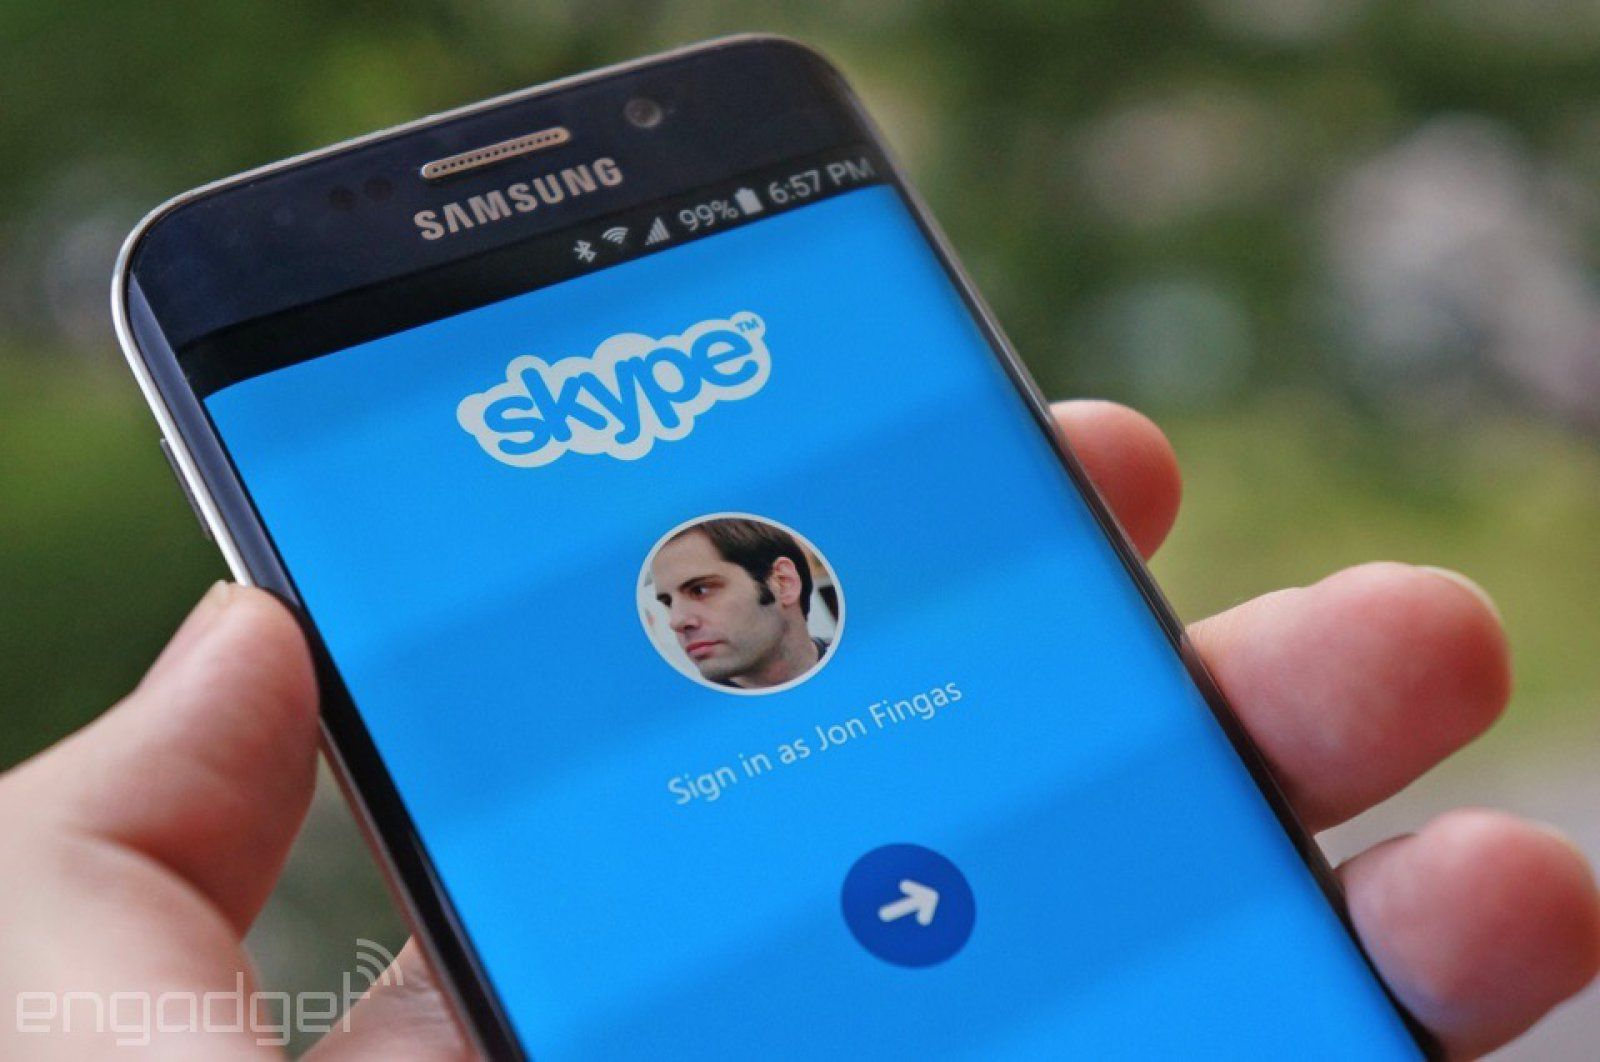 Skype no longer supporting Windows Phone or older Android